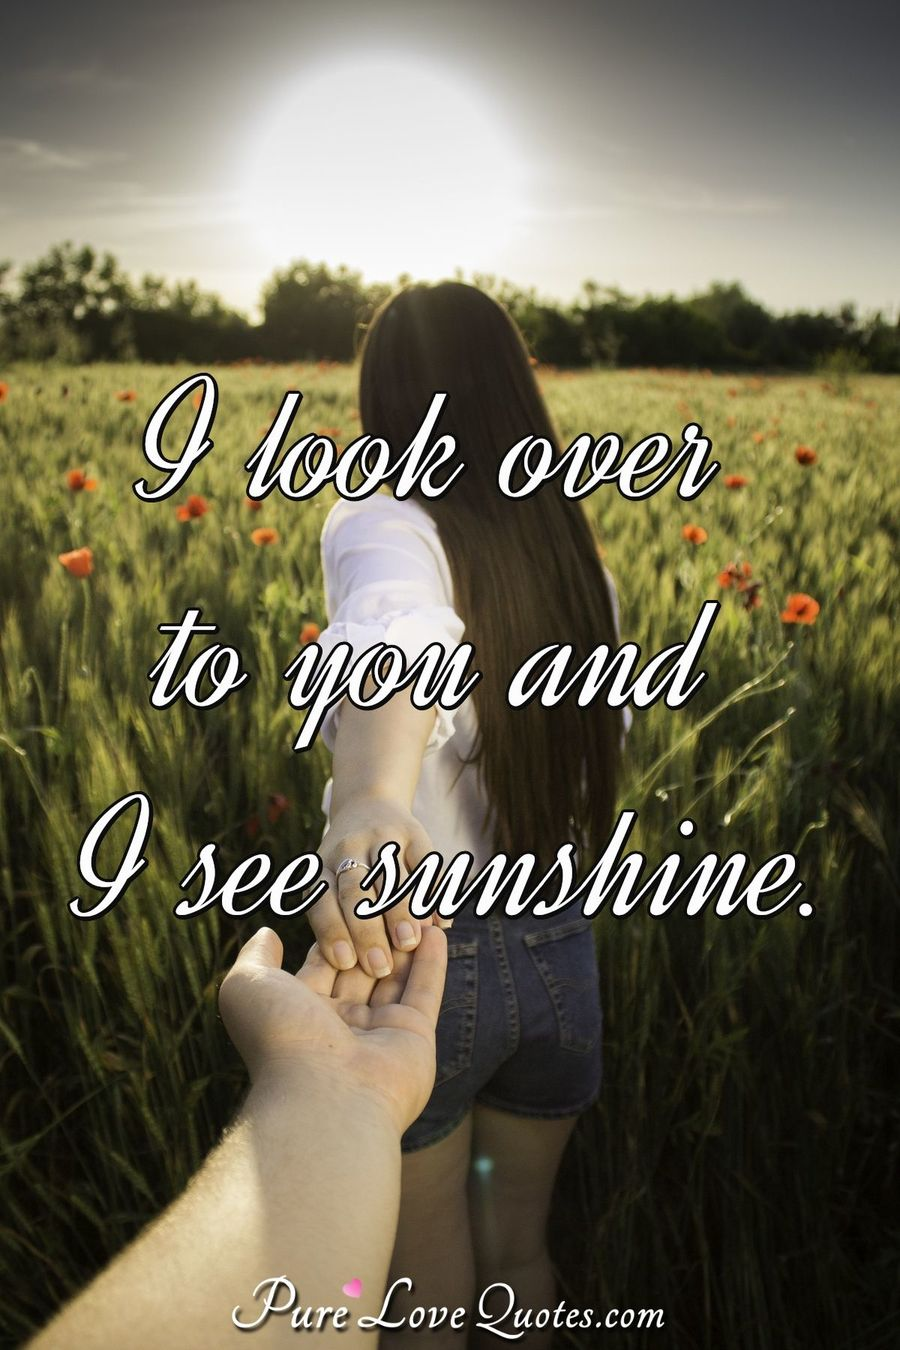 I look over to you and I see sunshine. - Anonymous